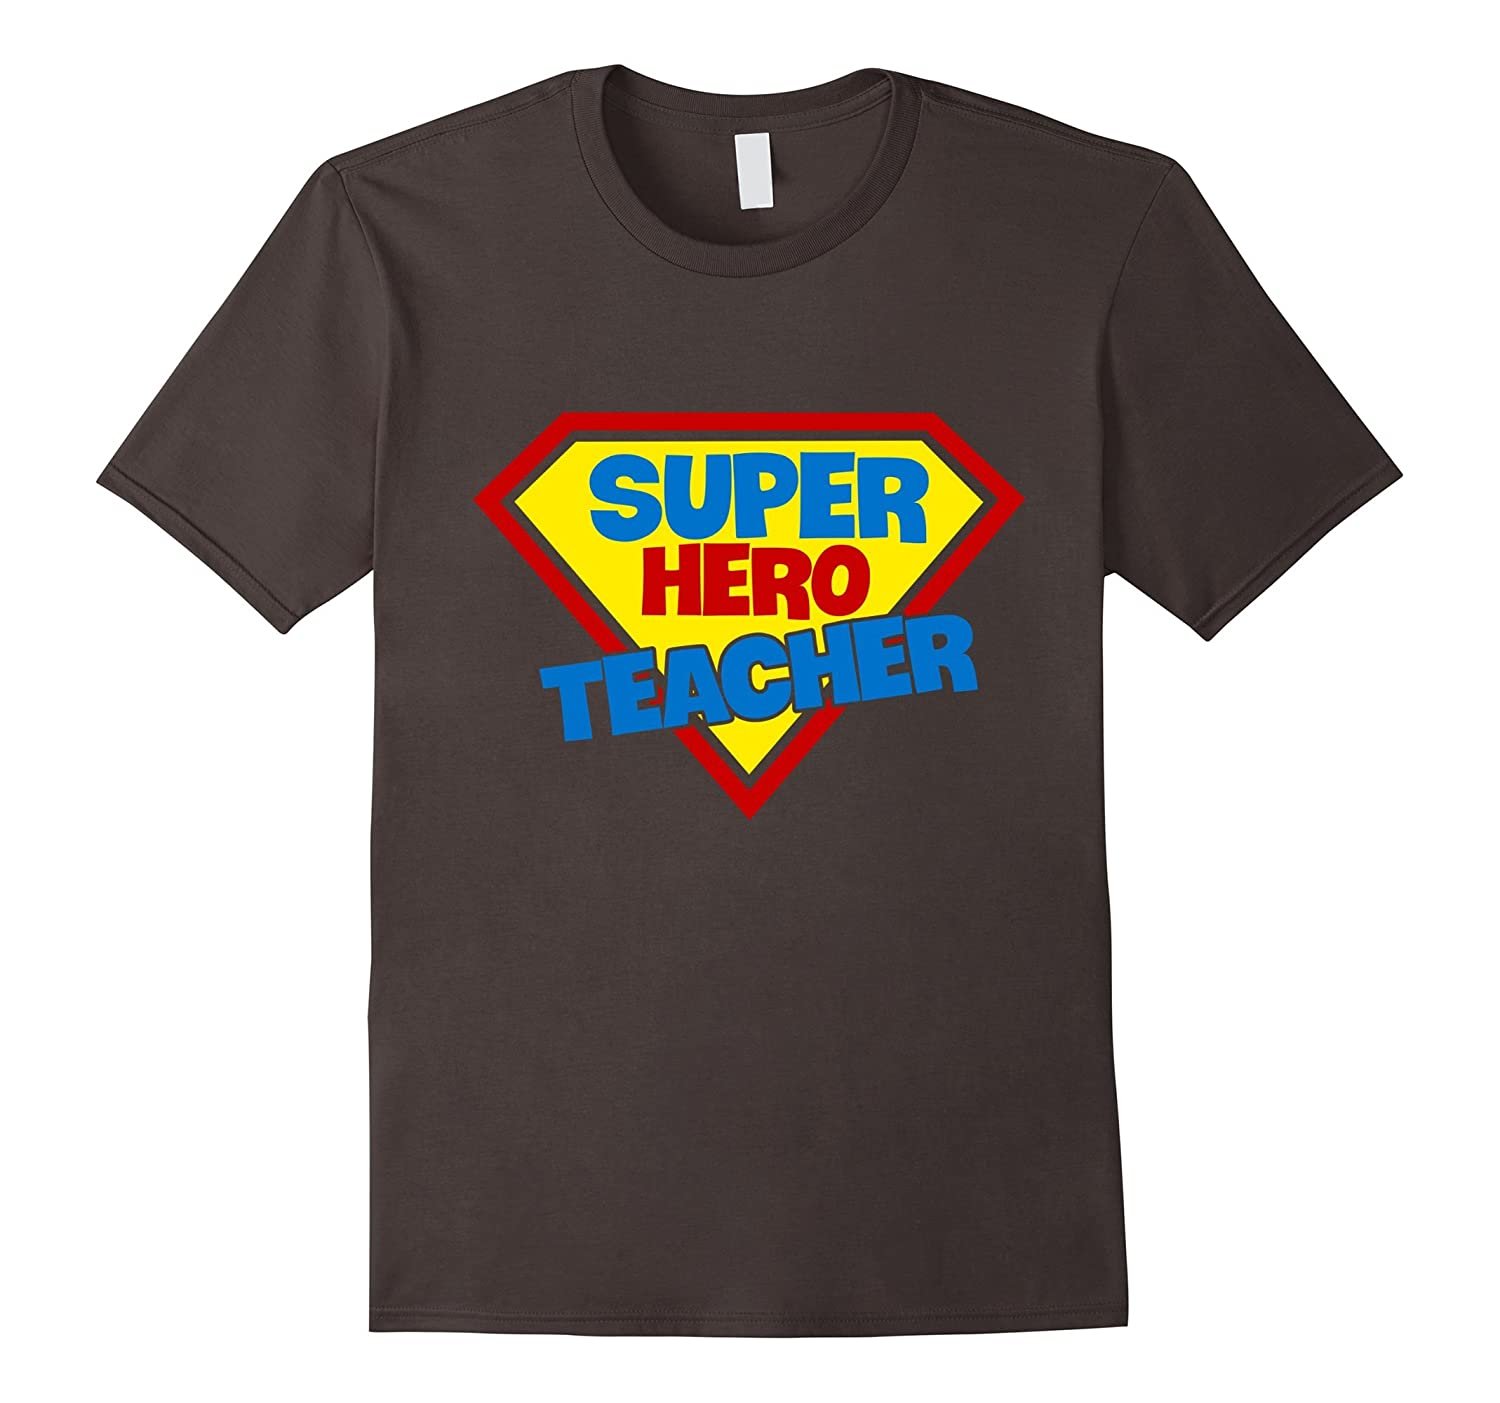 Super hero teacher